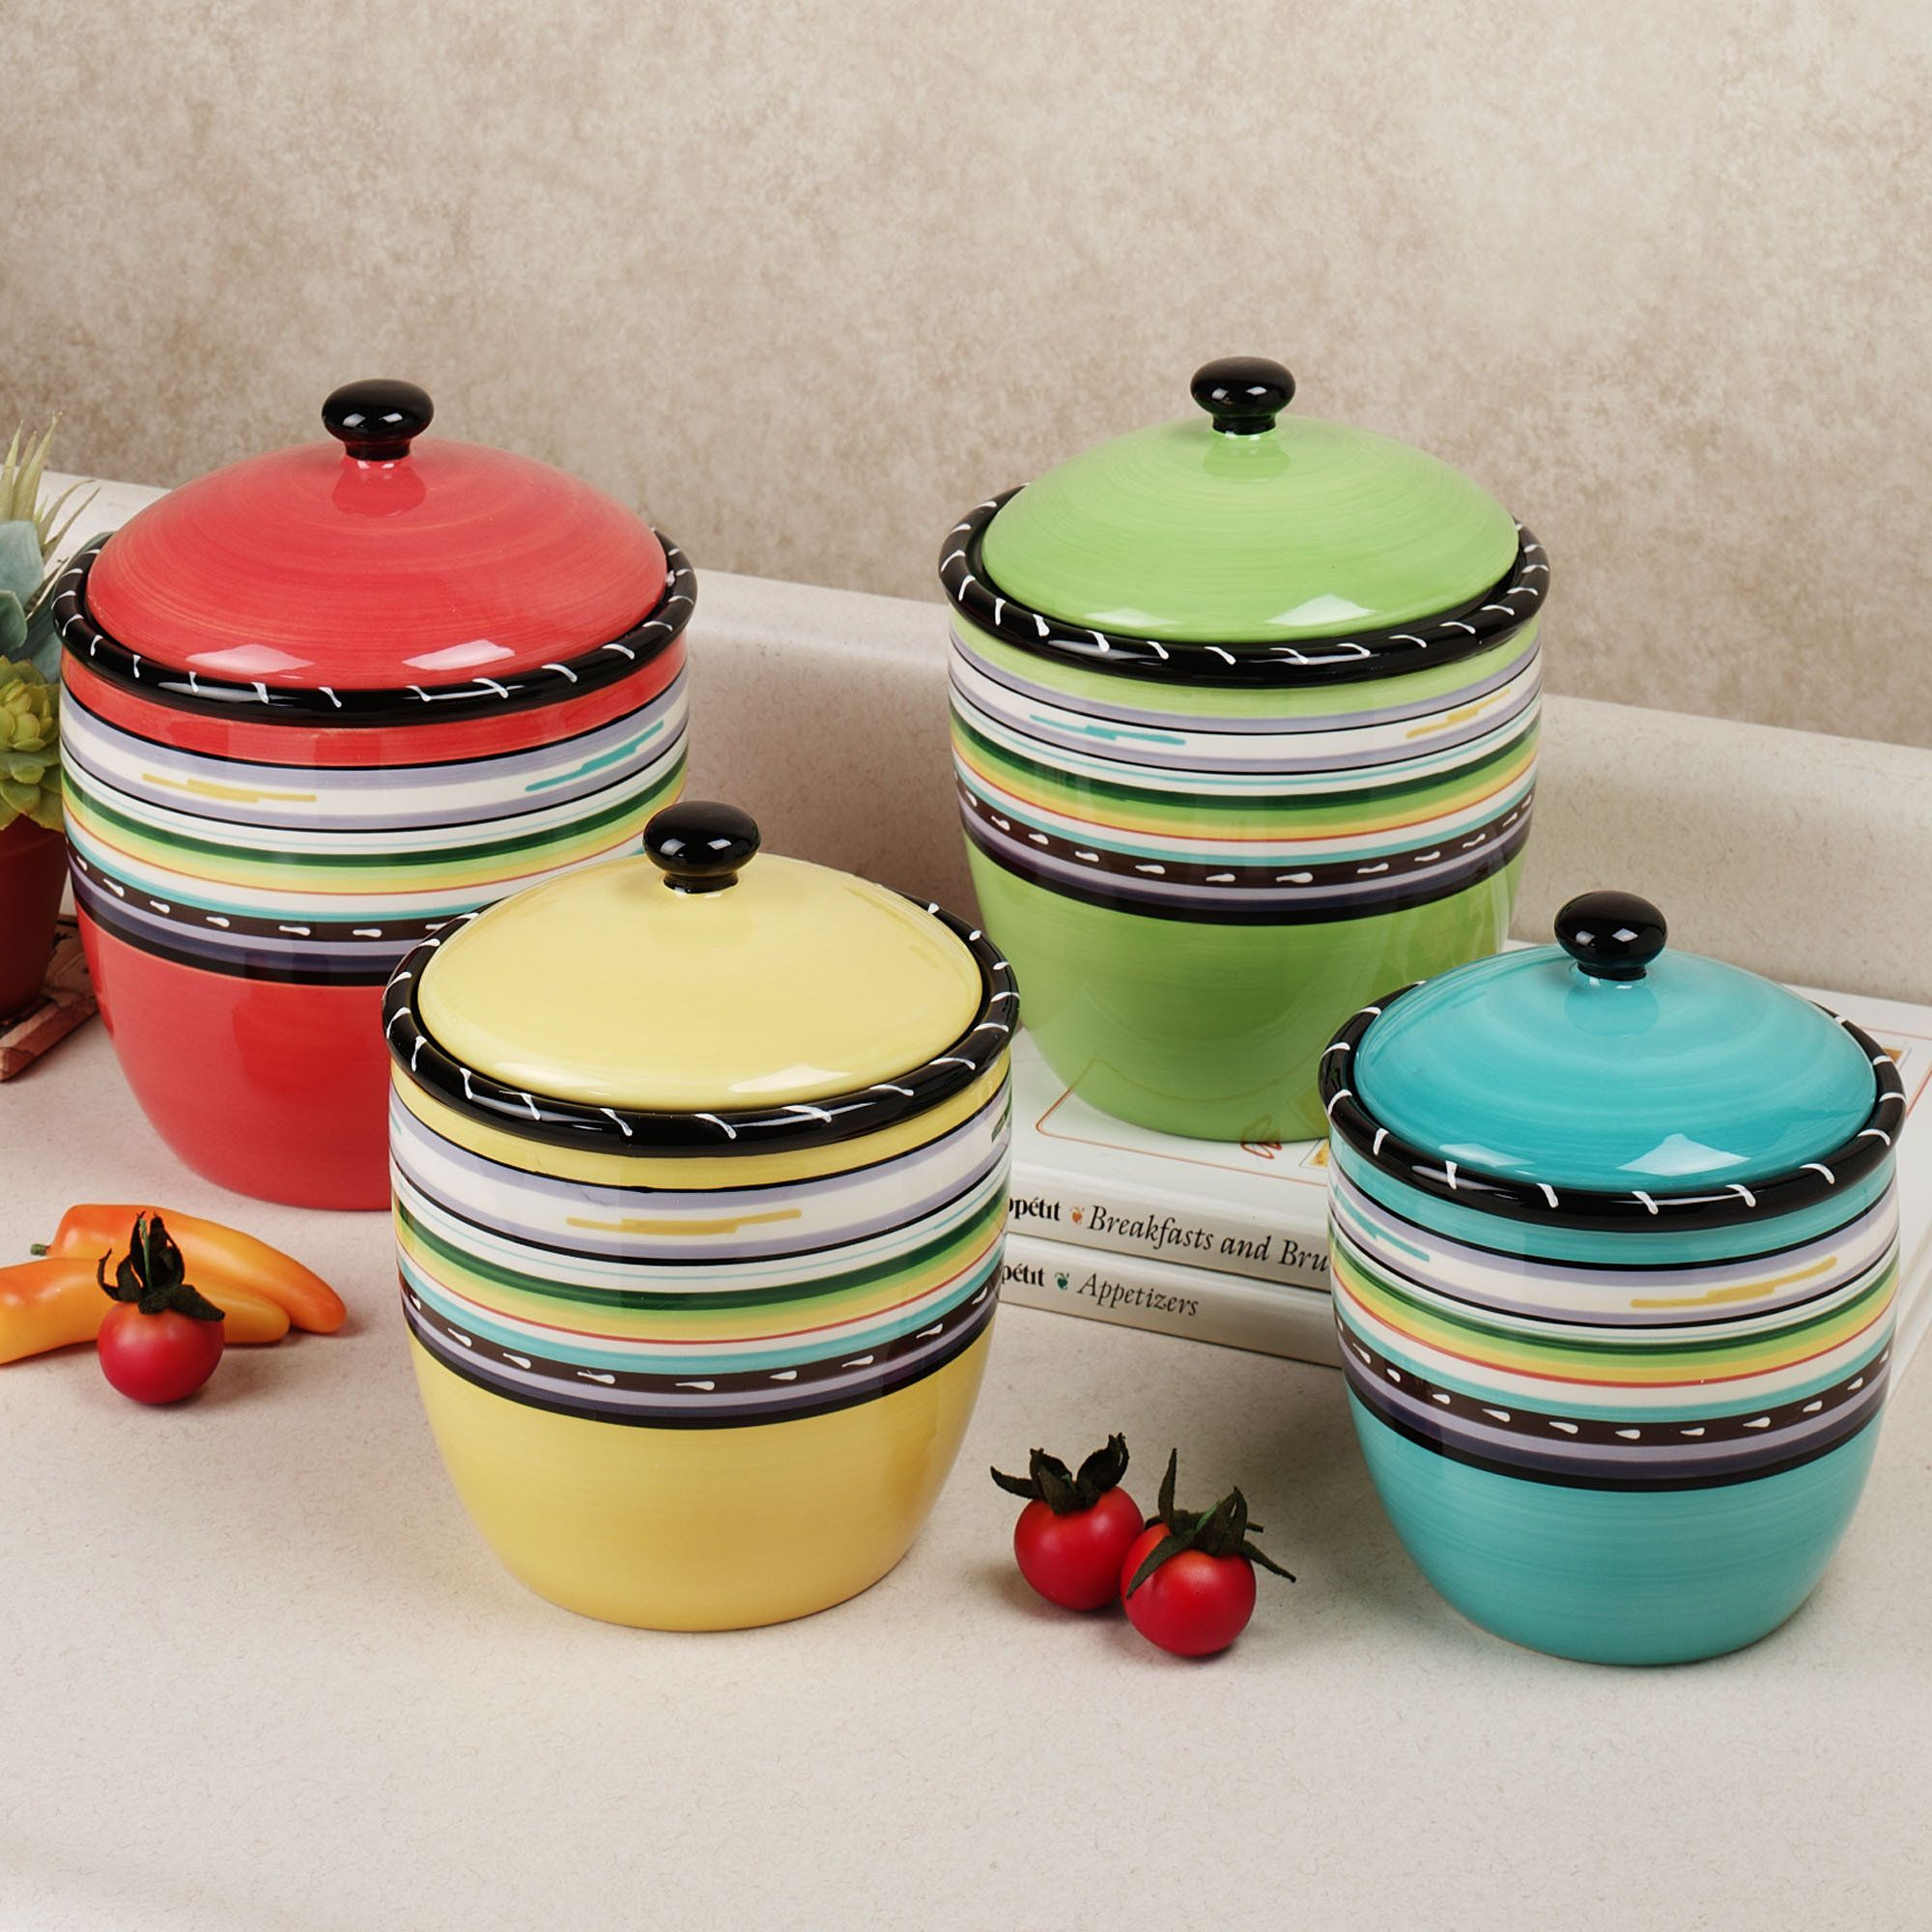 Country canister sets for kitchen - Kitchen Canister Sets